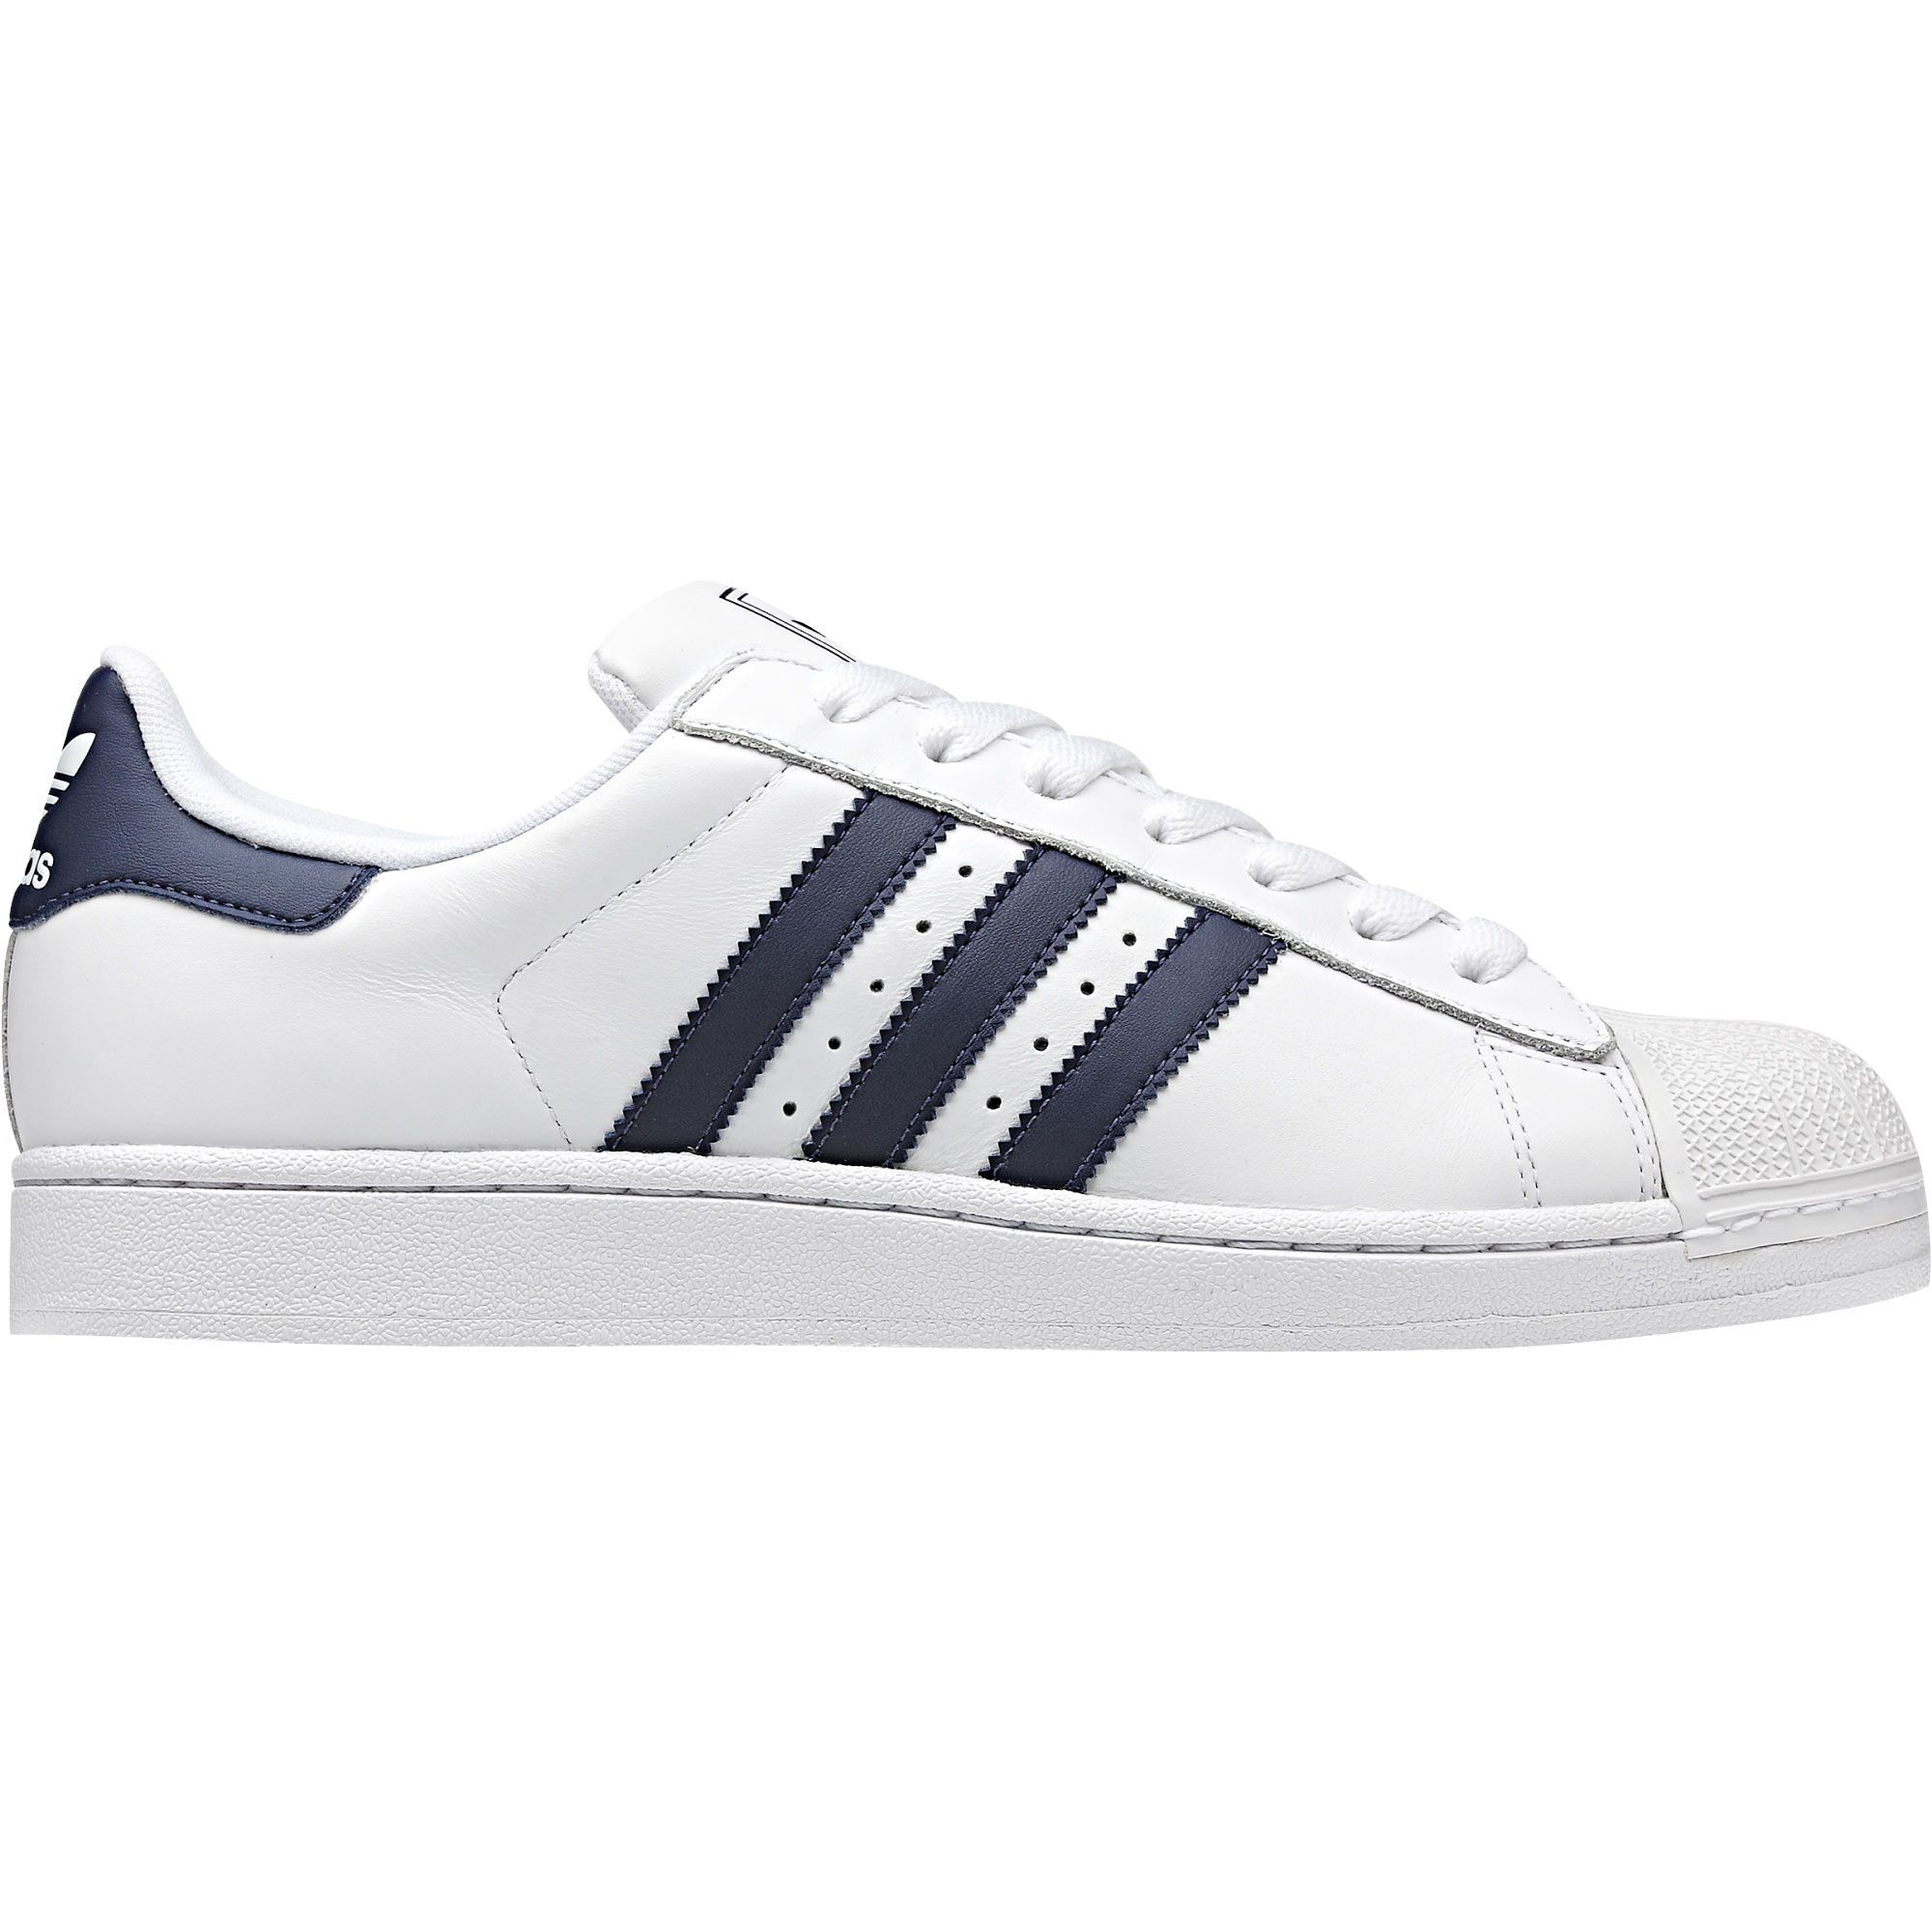 factory price 40498 b68c2 adidas Superstar 2 White/Navy Blue| adidas UK. Cant believe ...